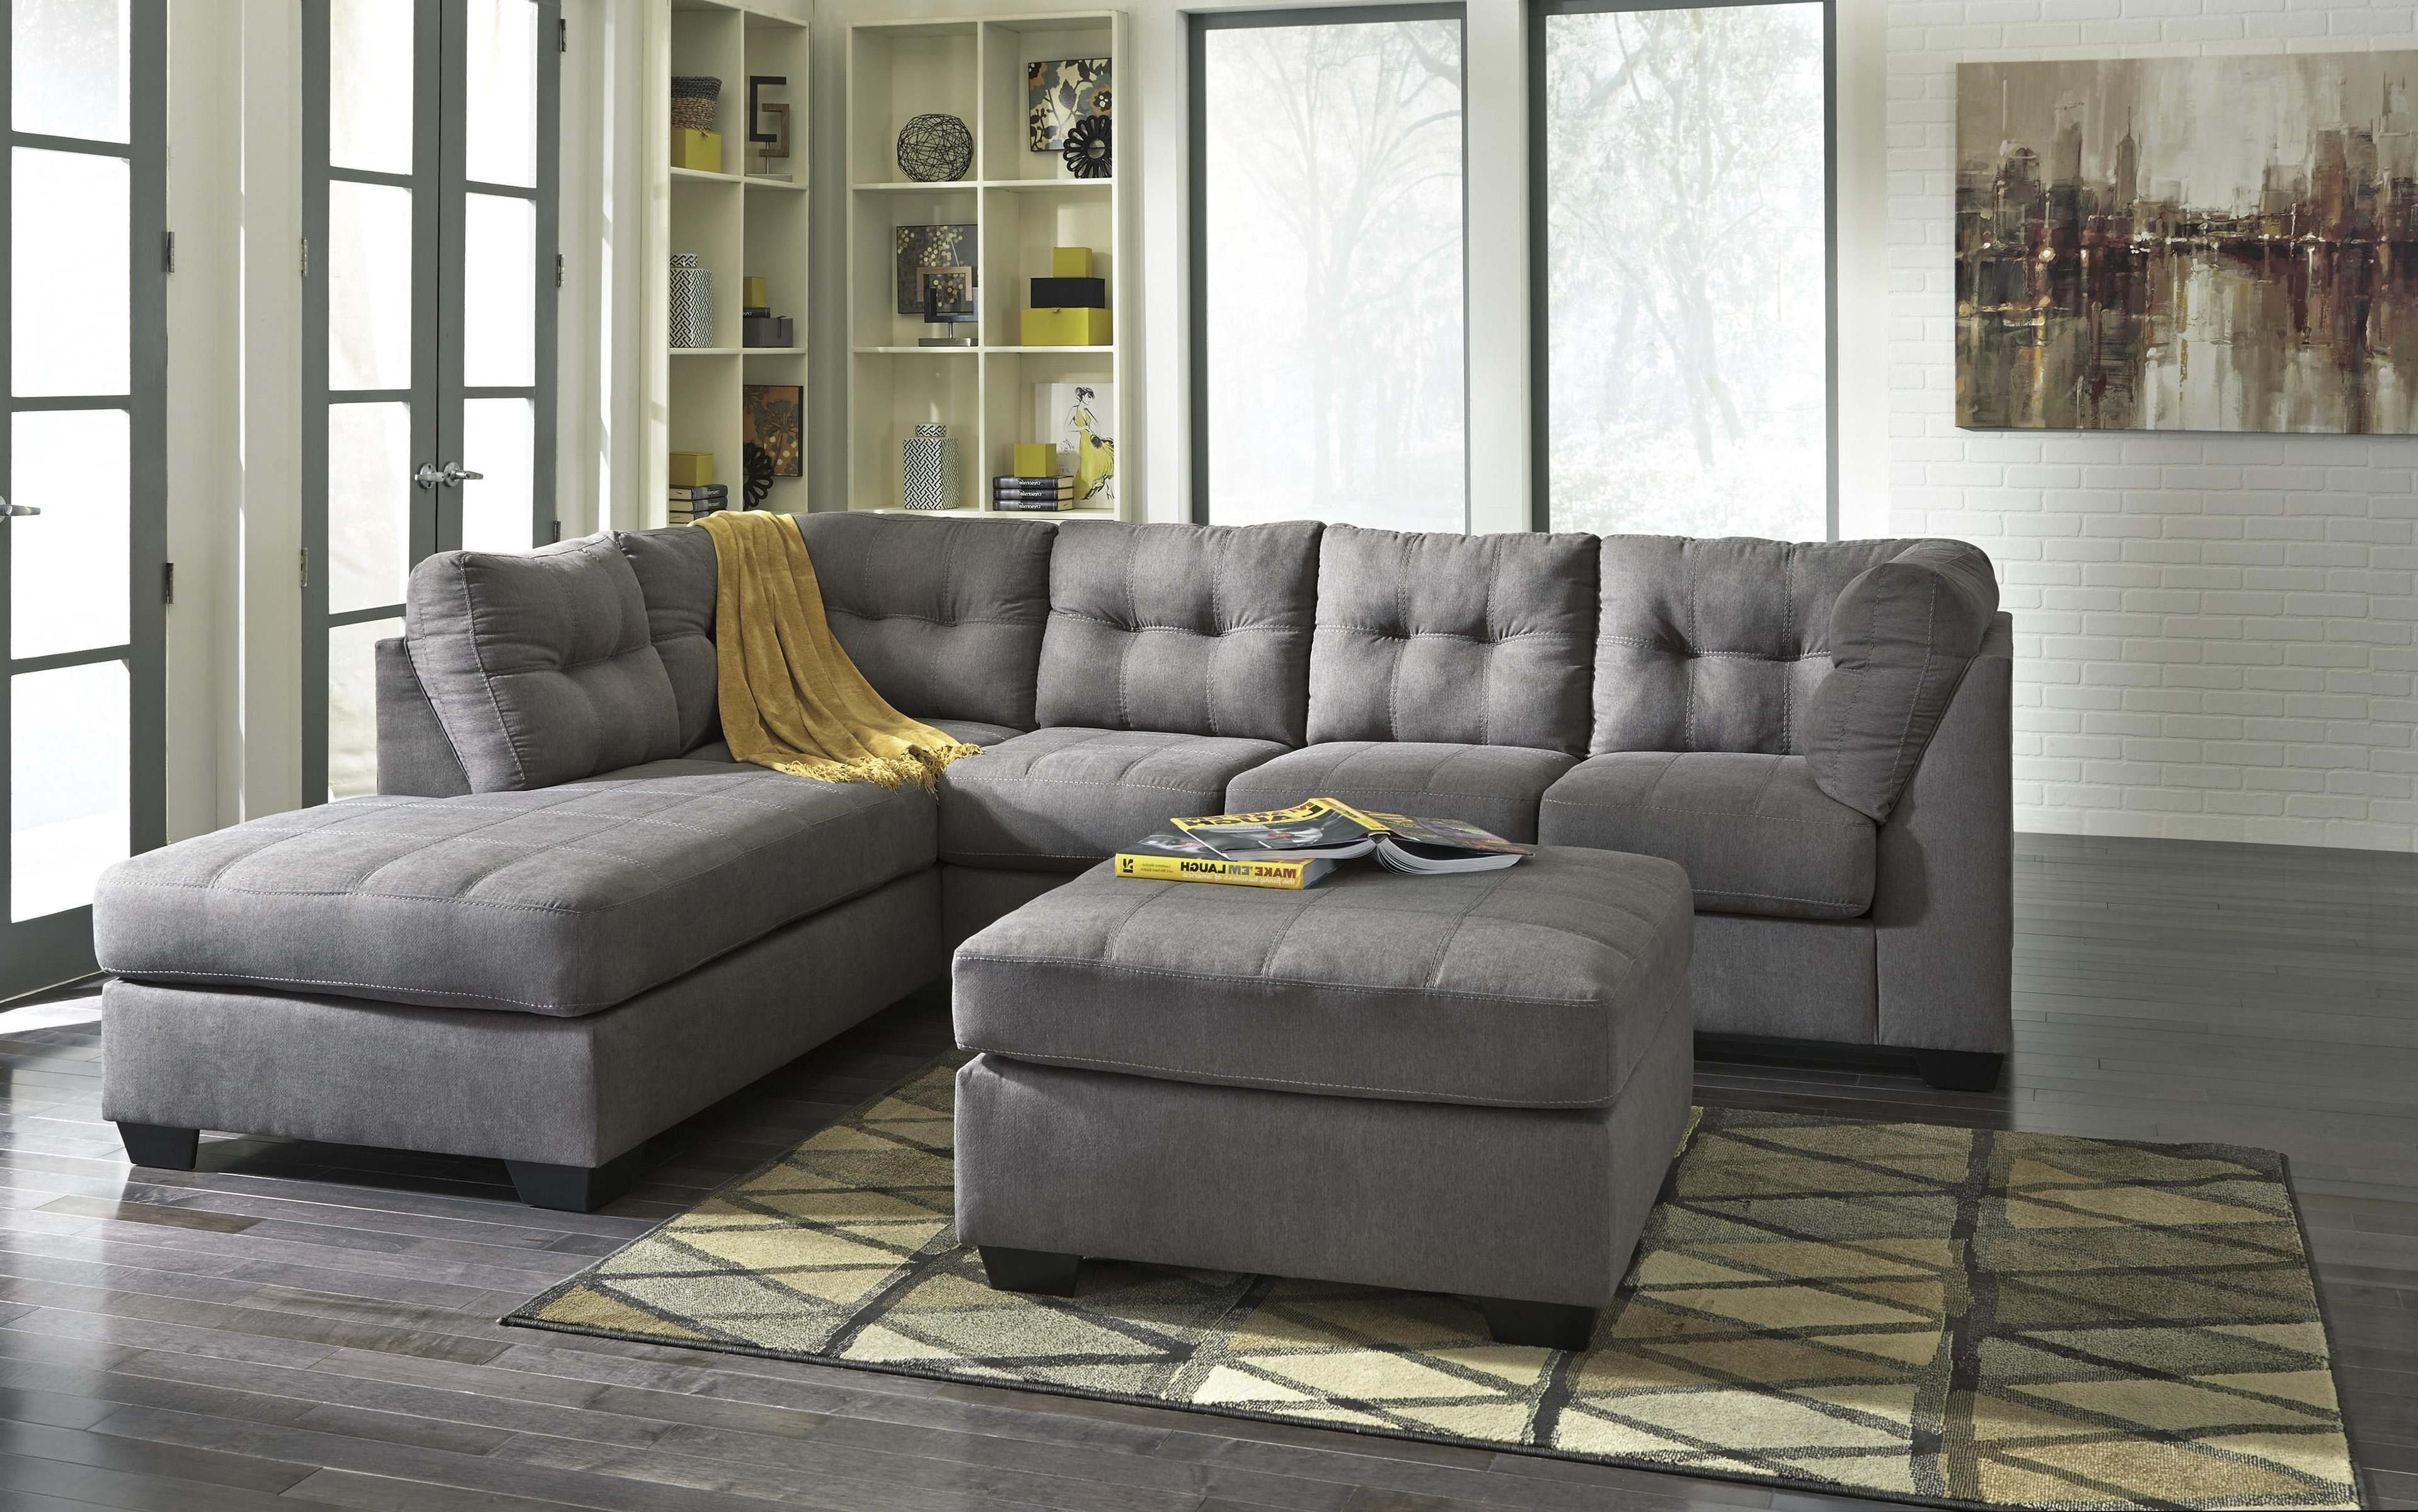 Family Room Intended For Eau Claire Wi Sectional Sofas (View 4 of 20)